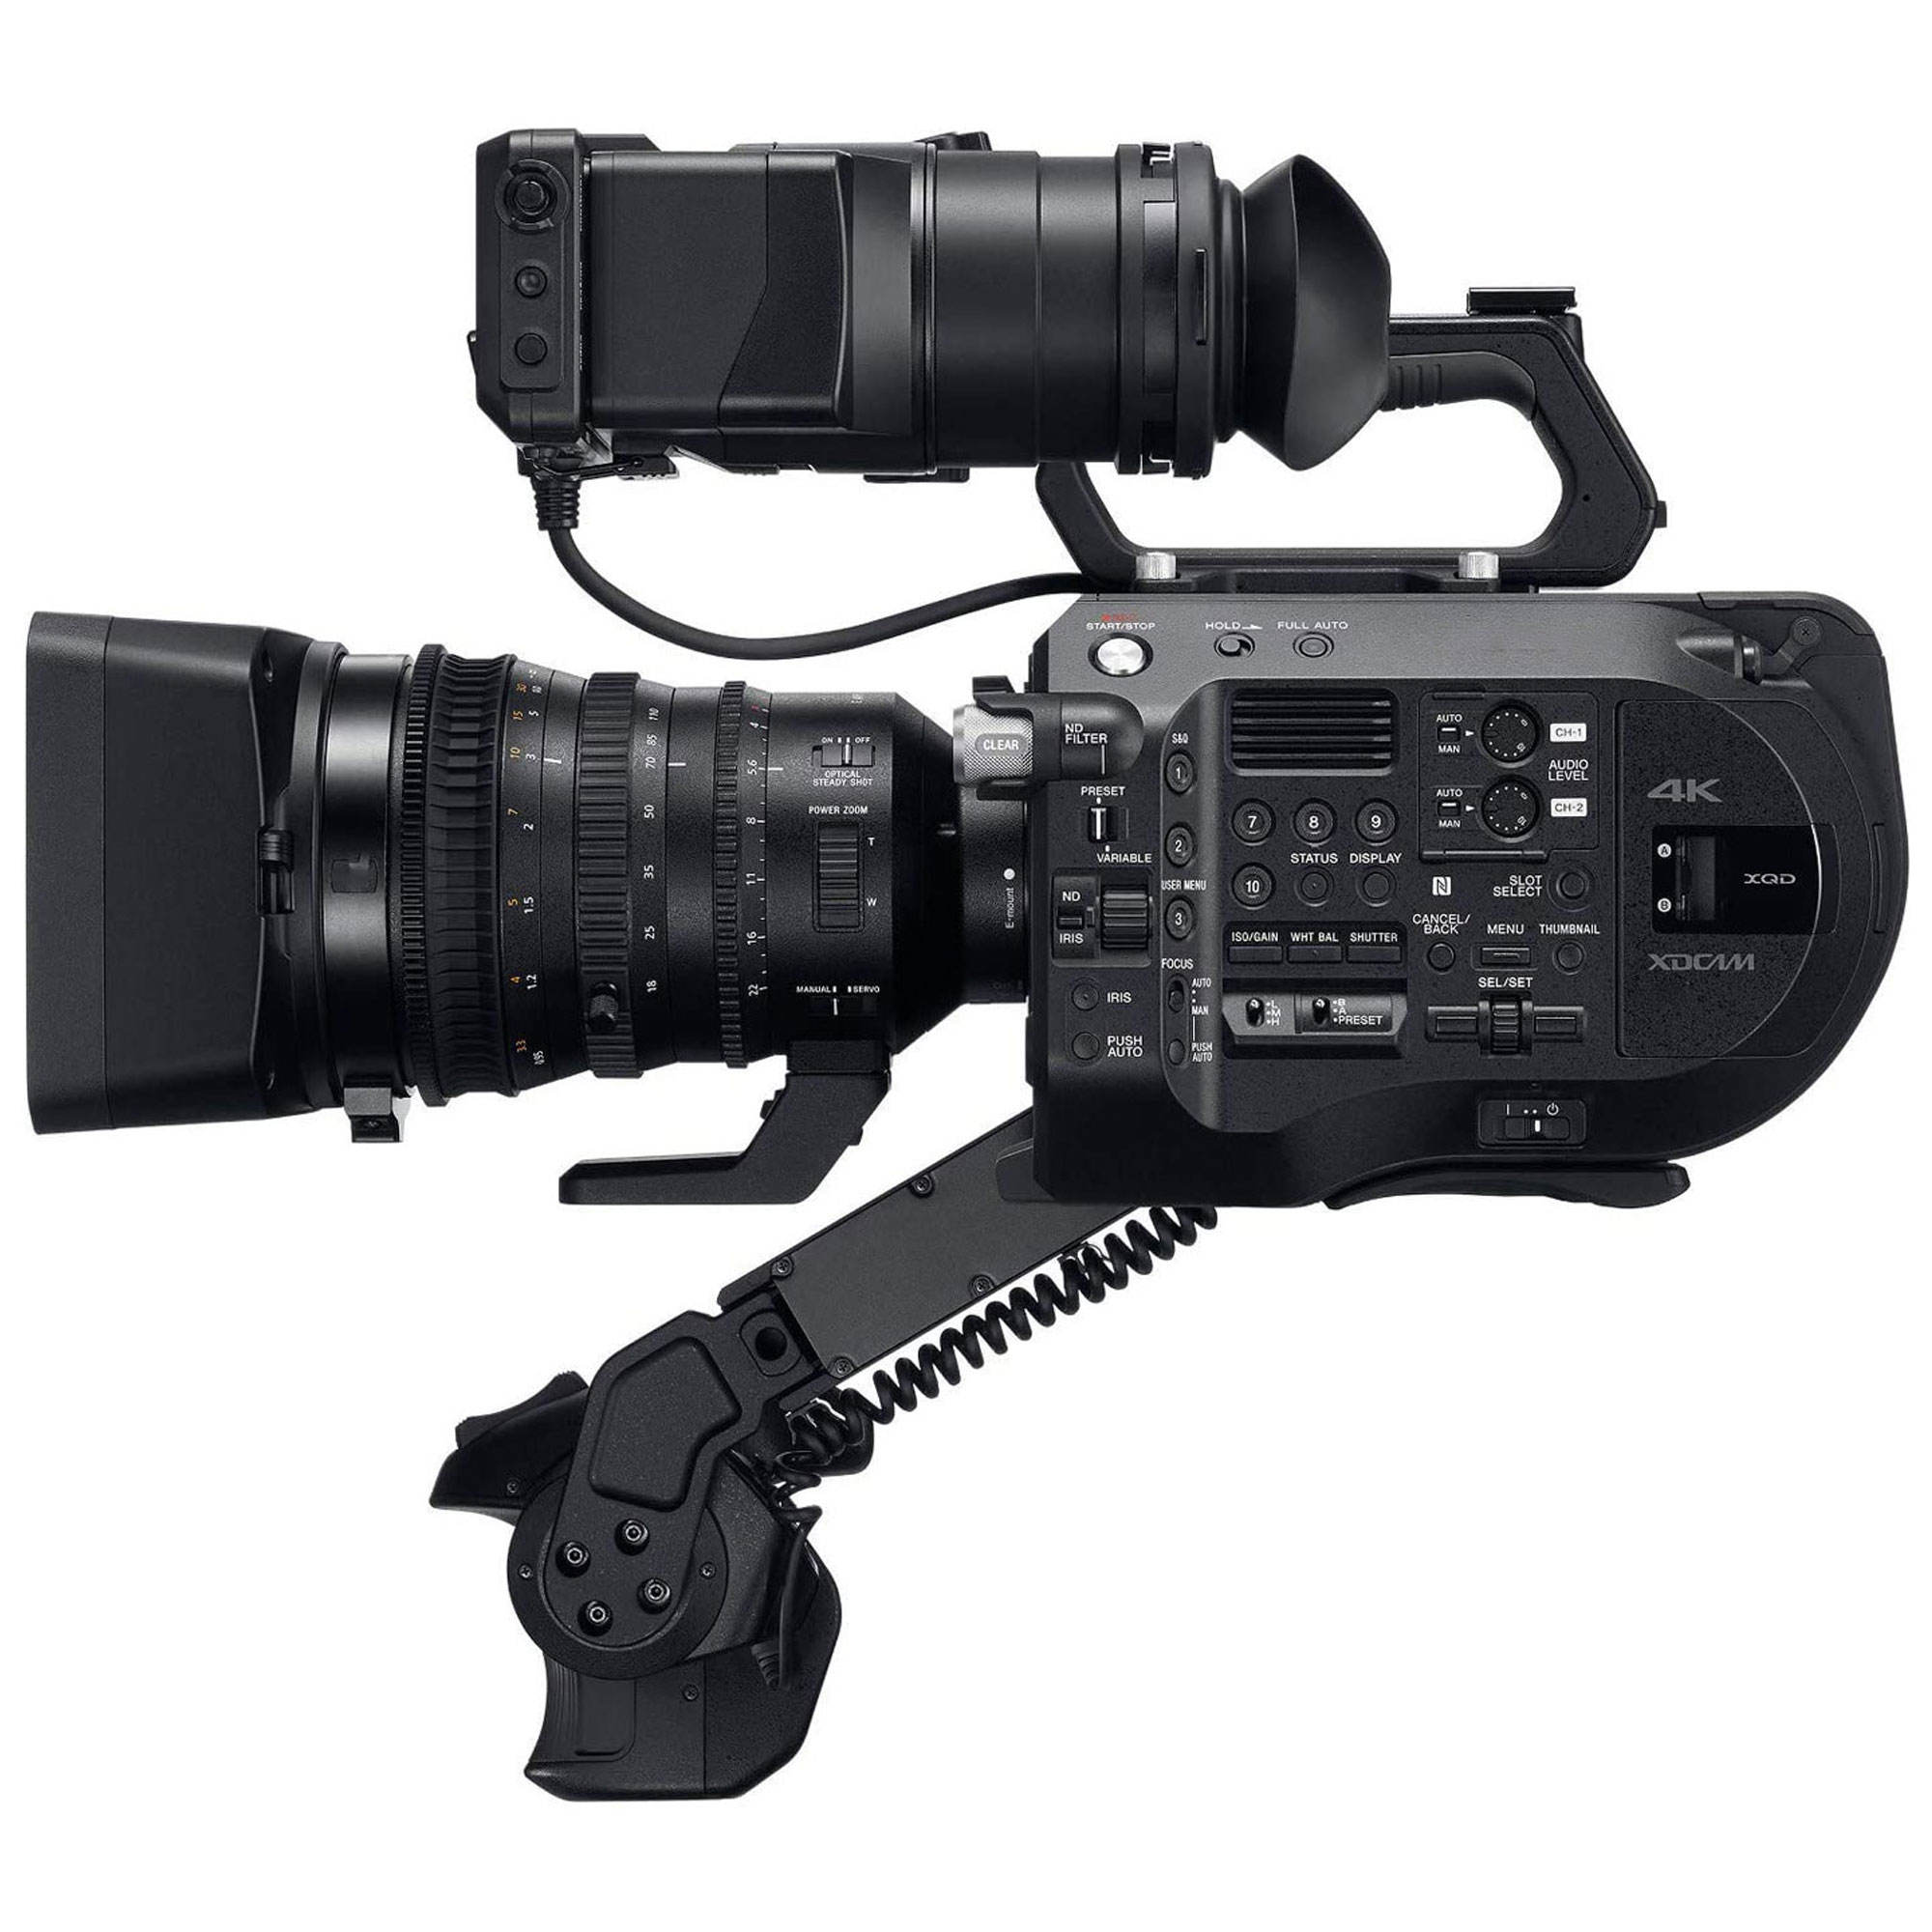 All New S o ny PXW-FS7M2 4K XDCAM Digital Cameras Super 35 Camcorder Kit with 18-110mm Zoom Lens Professional